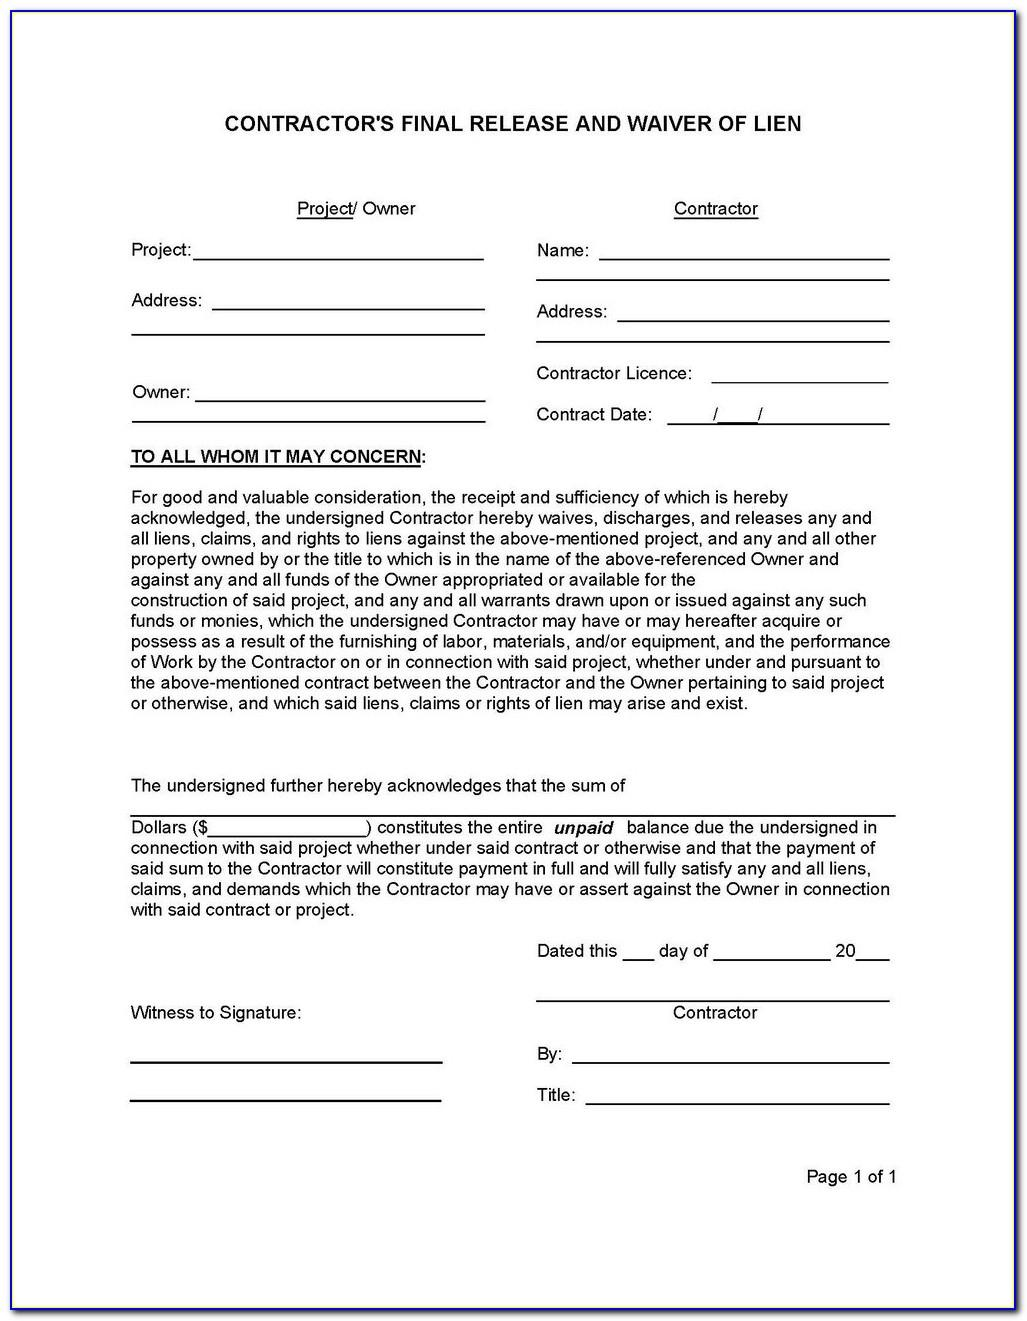 Lien Waiver Form Minnesota